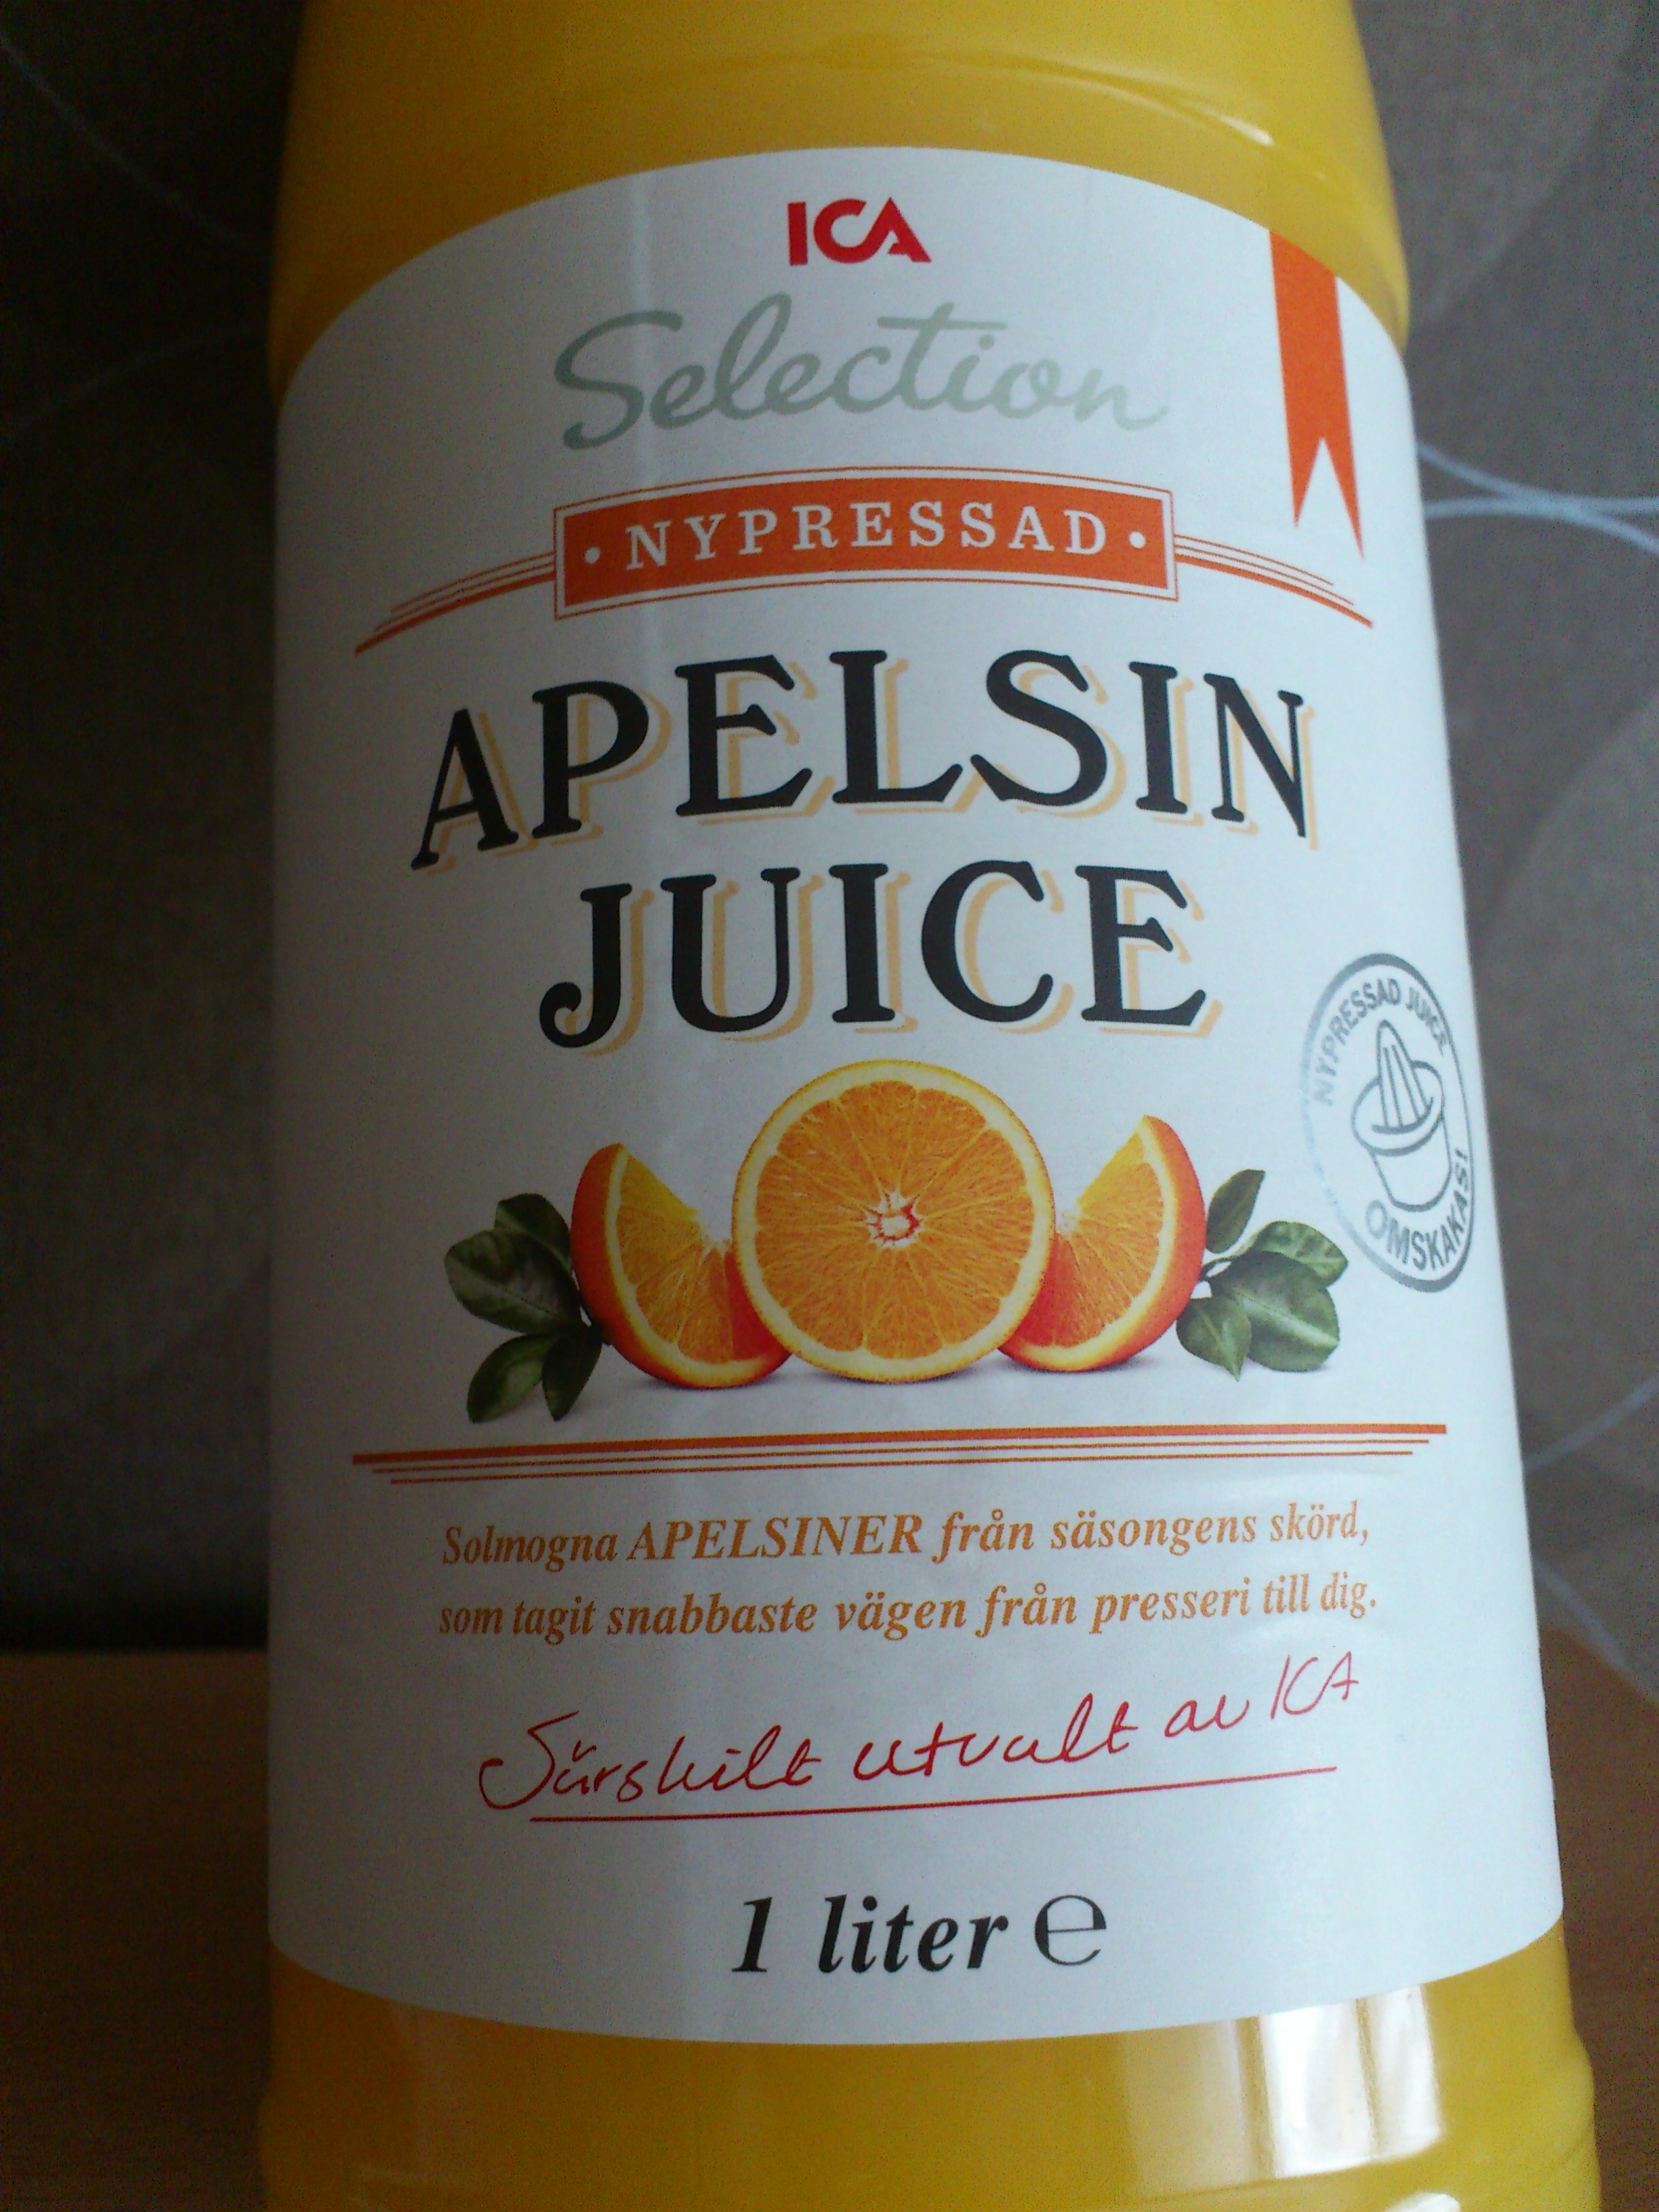 ica selection apelsinjuice